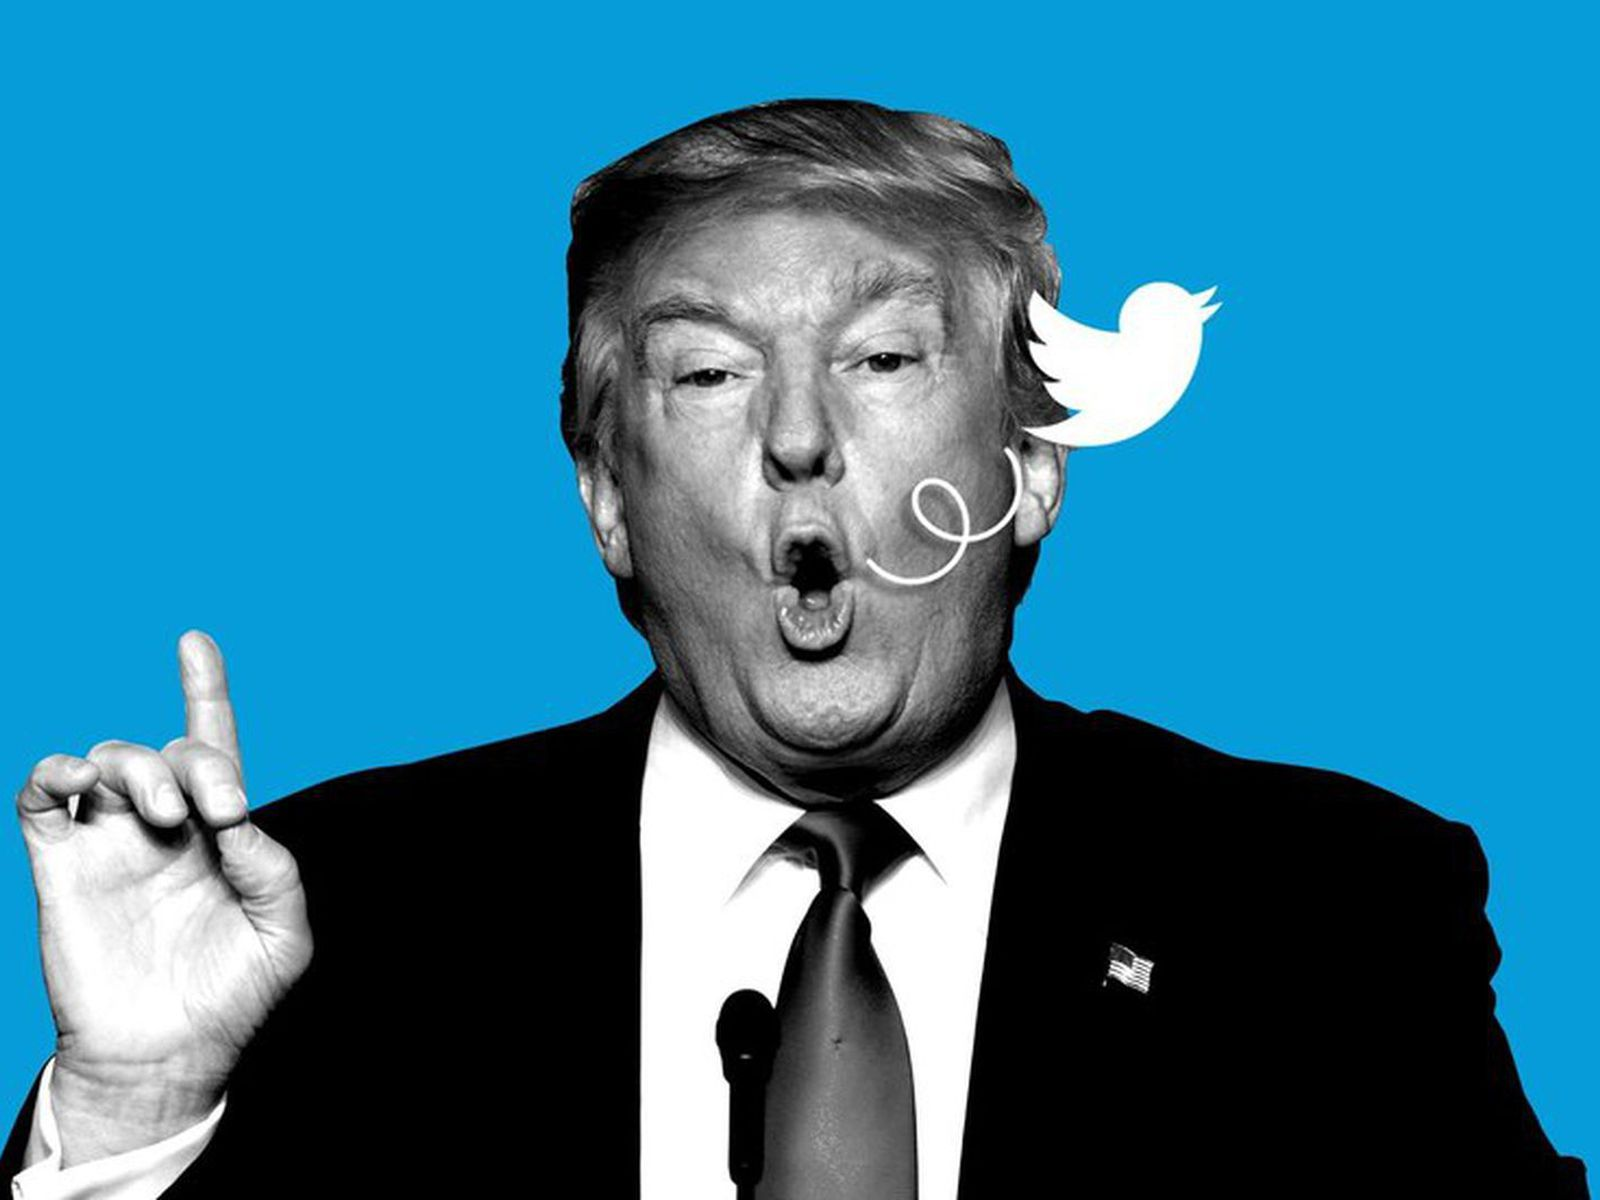 Donald Trump contra las redes sociales-posdata digital press